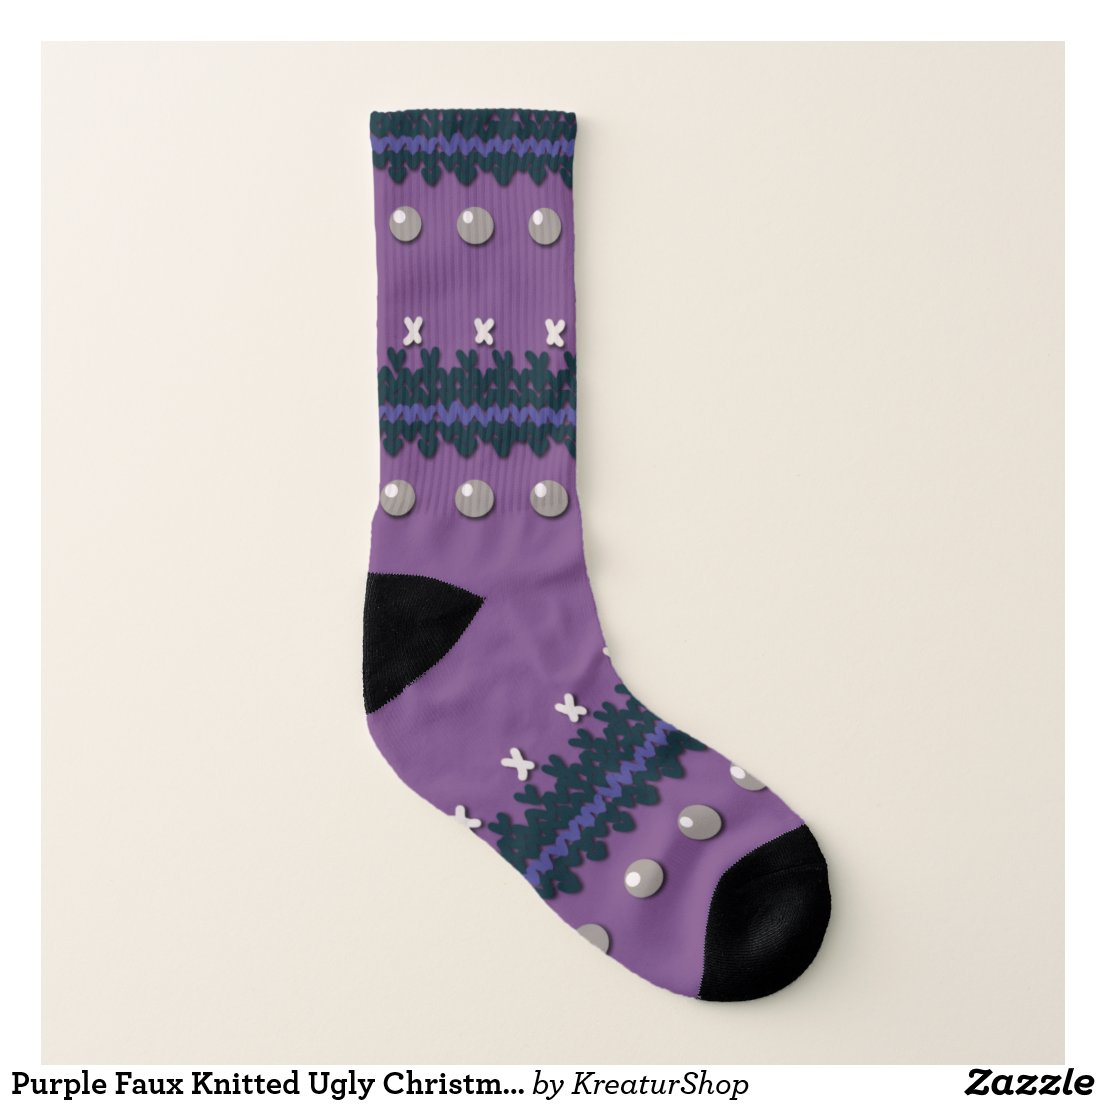 Purple Faux Knitted Ugly Christmas Design